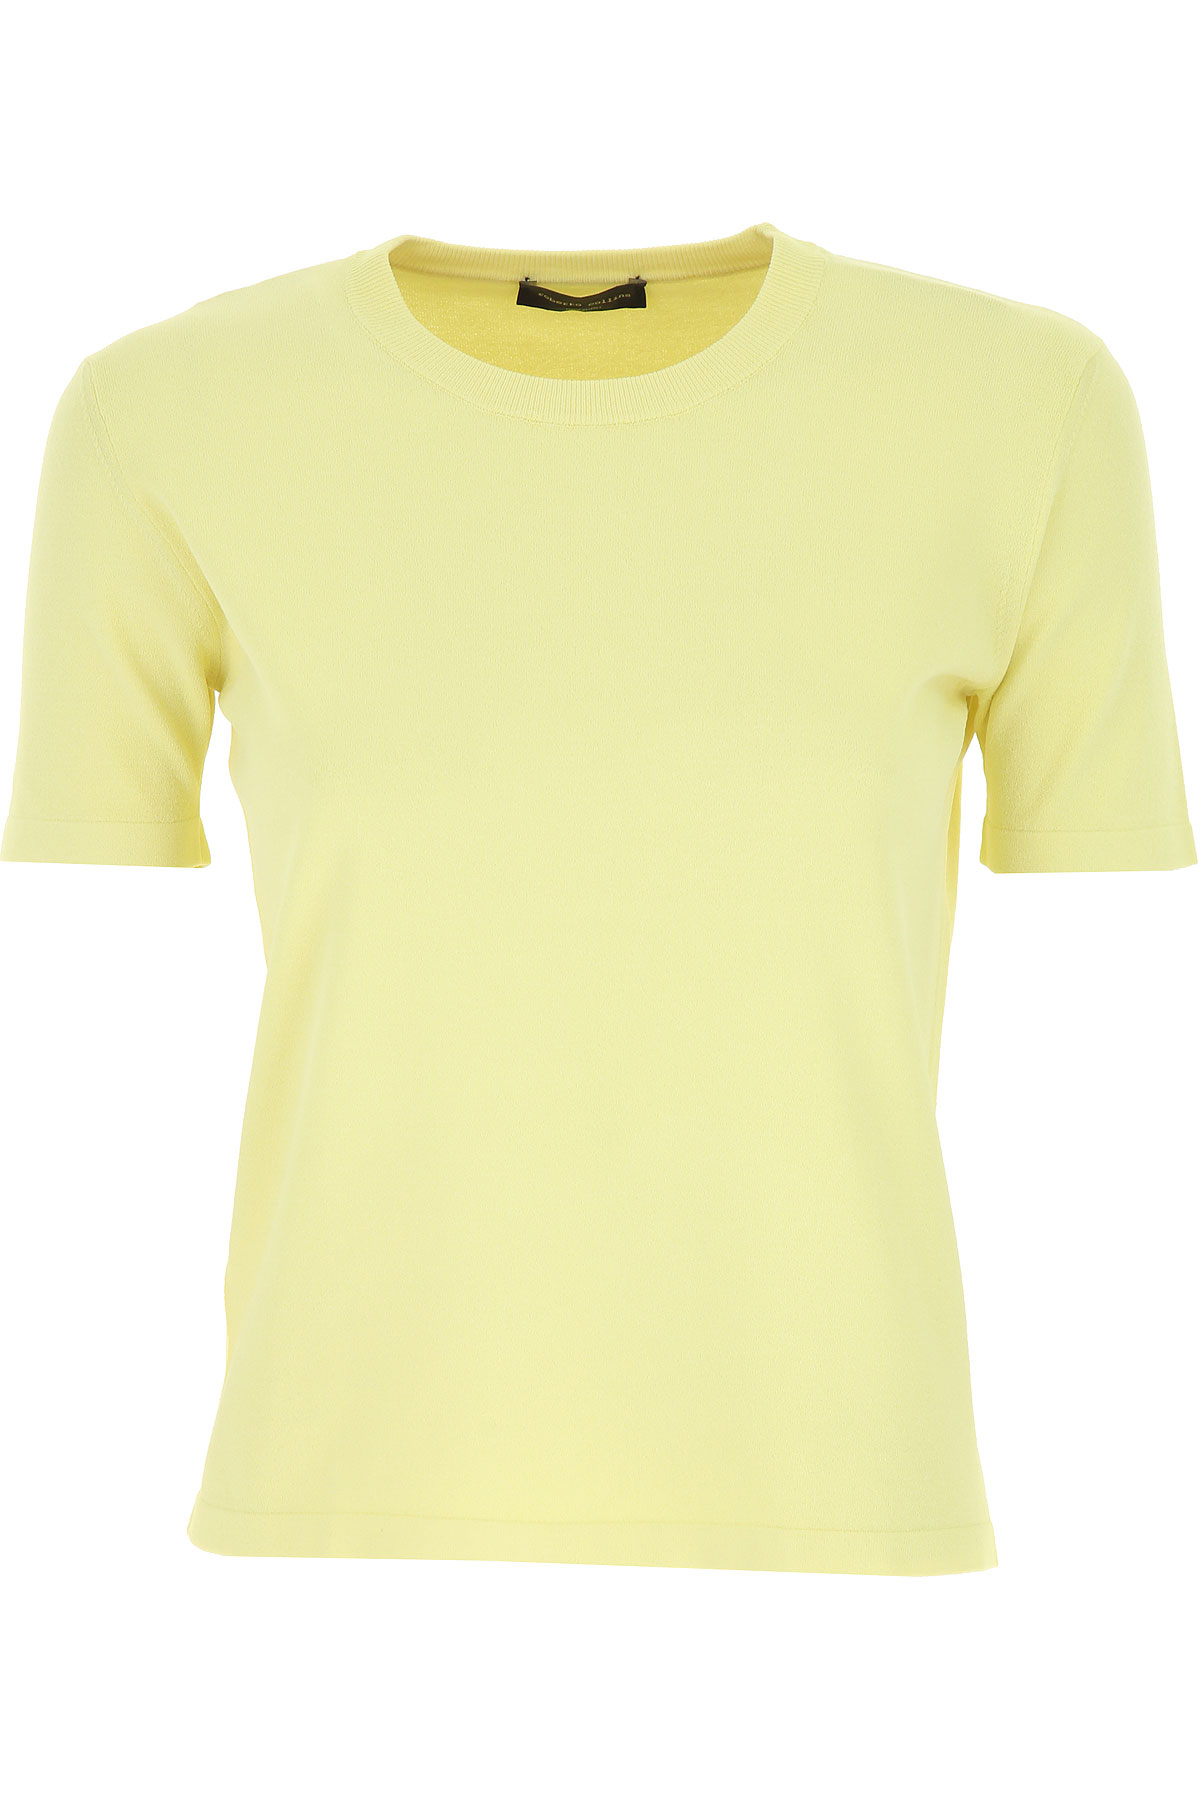 Roberto Collina Sweater for Women Jumper On Sale, Canary Yellow, viscosa, 2019, 4 8